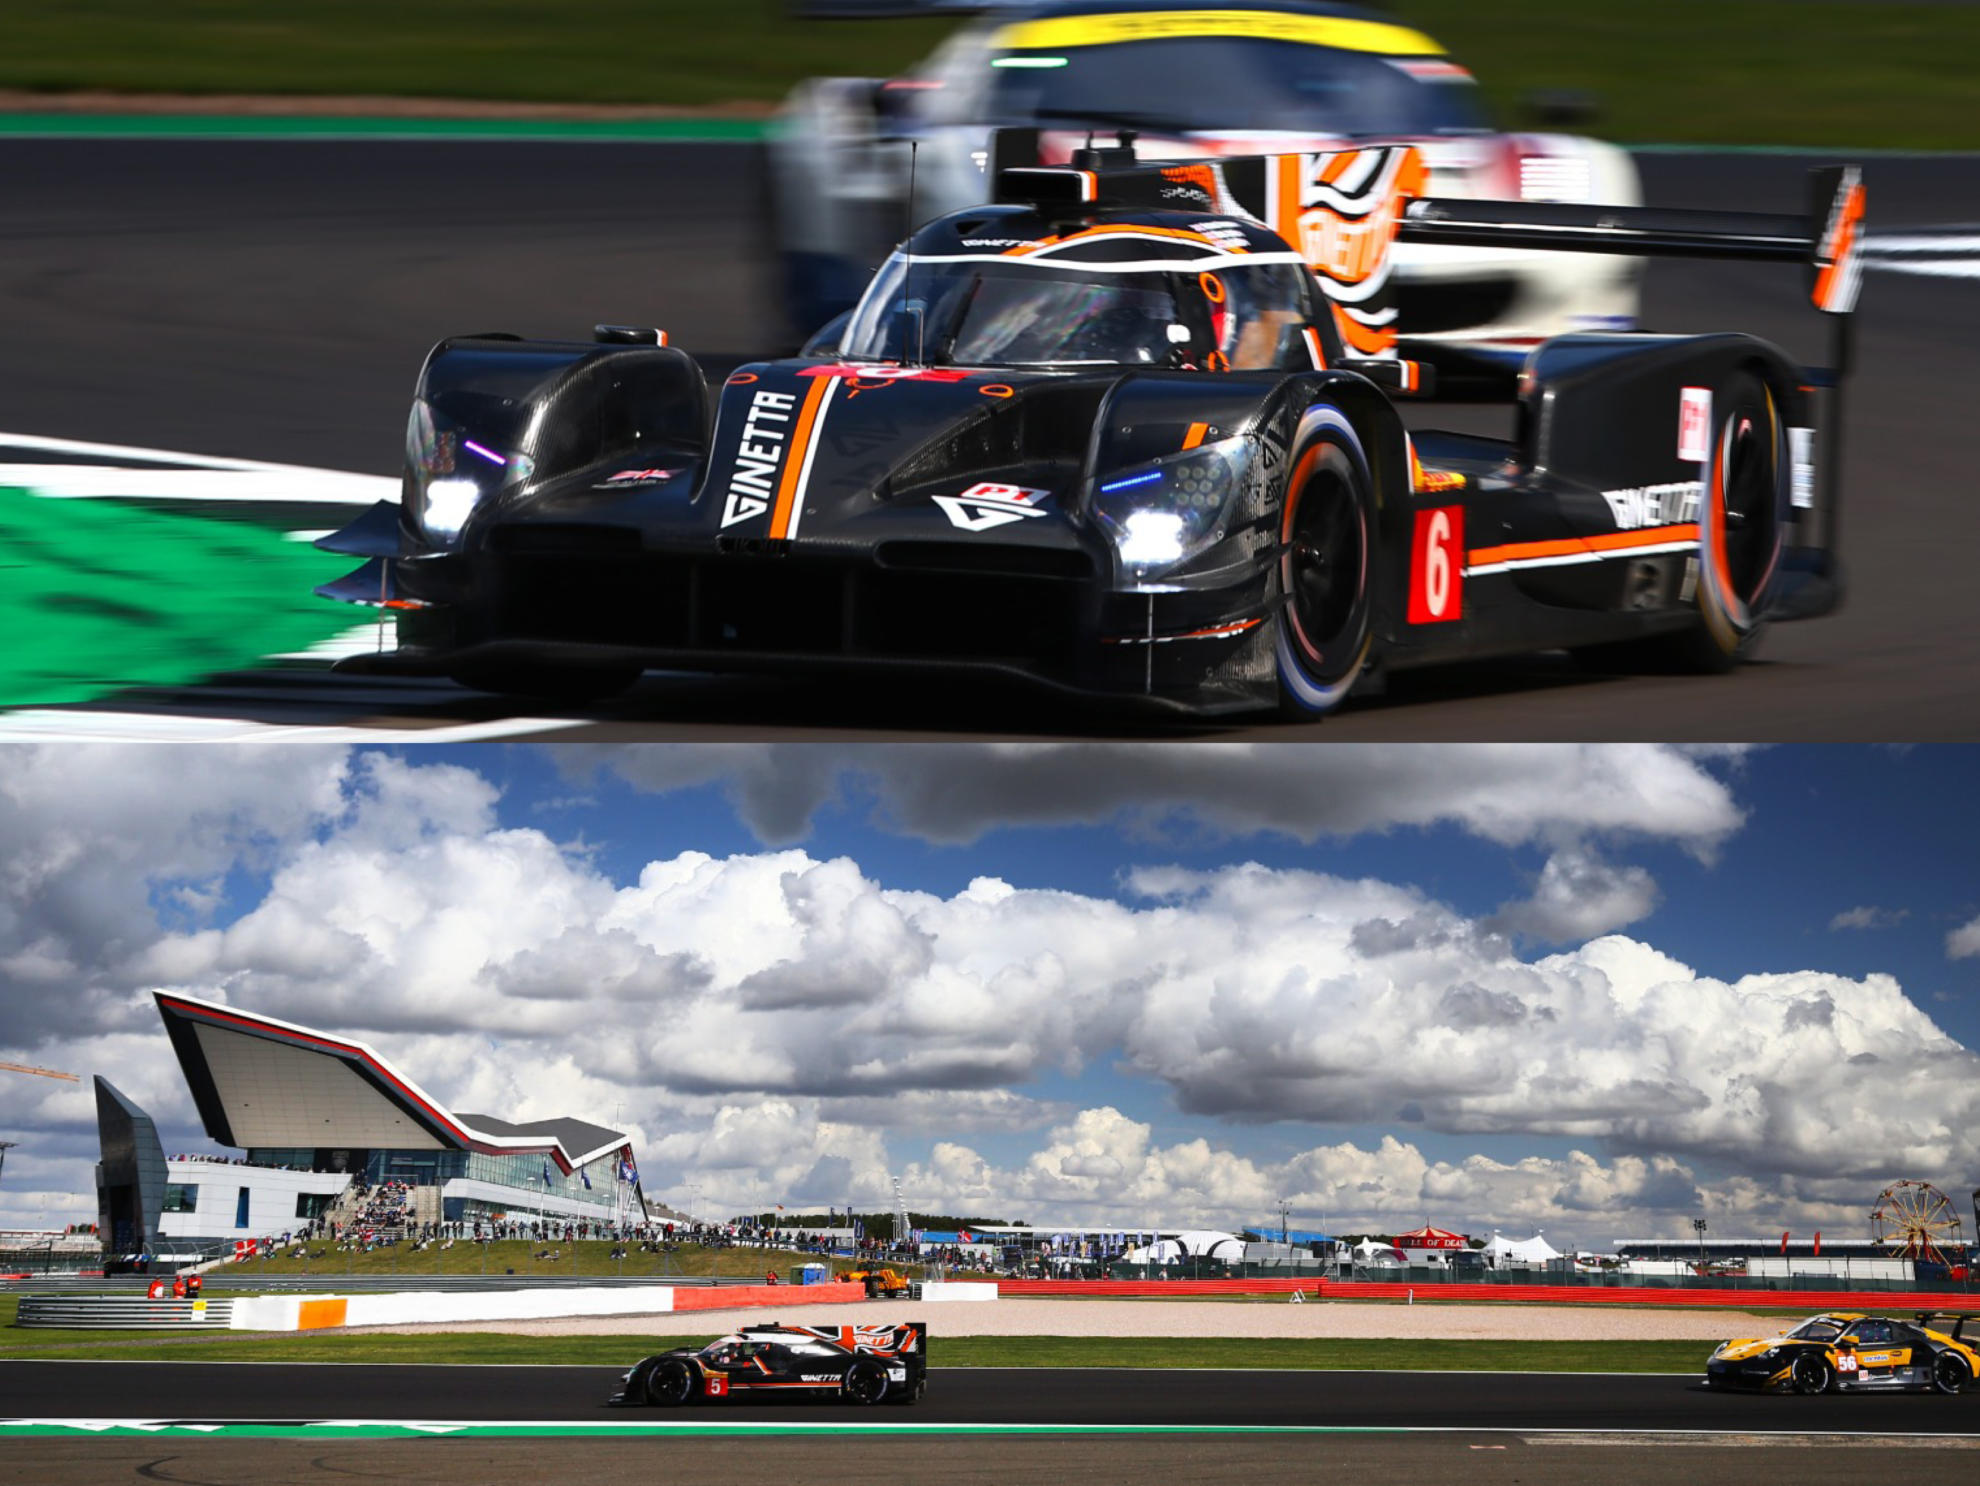 Team LNT Ginetta Score 4th Place At Silverstone